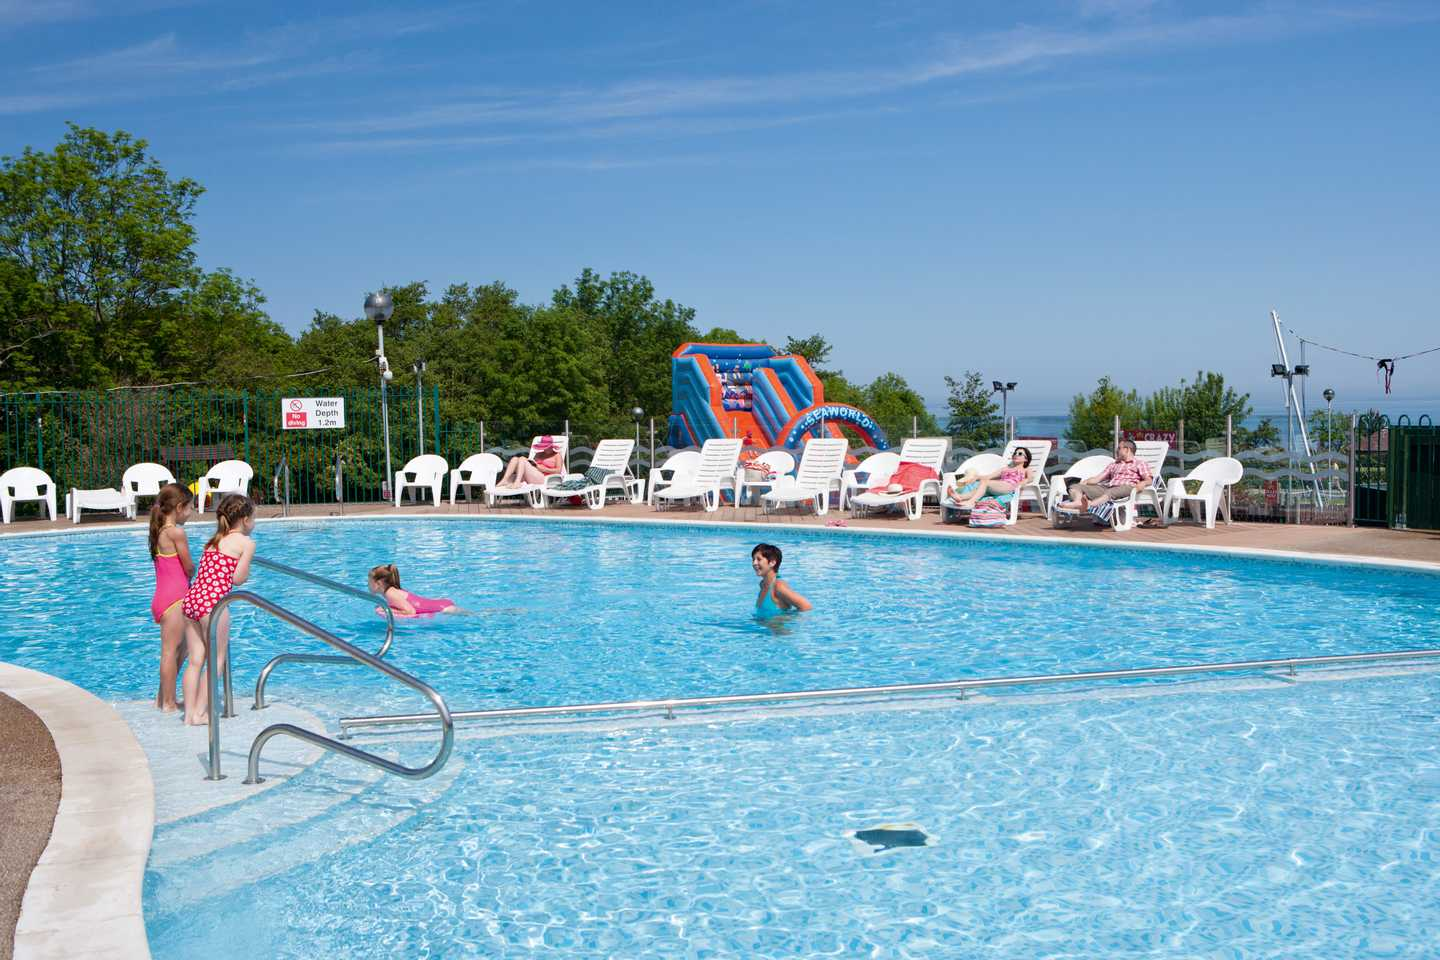 Guests playing in the outdoor pool at Quay West